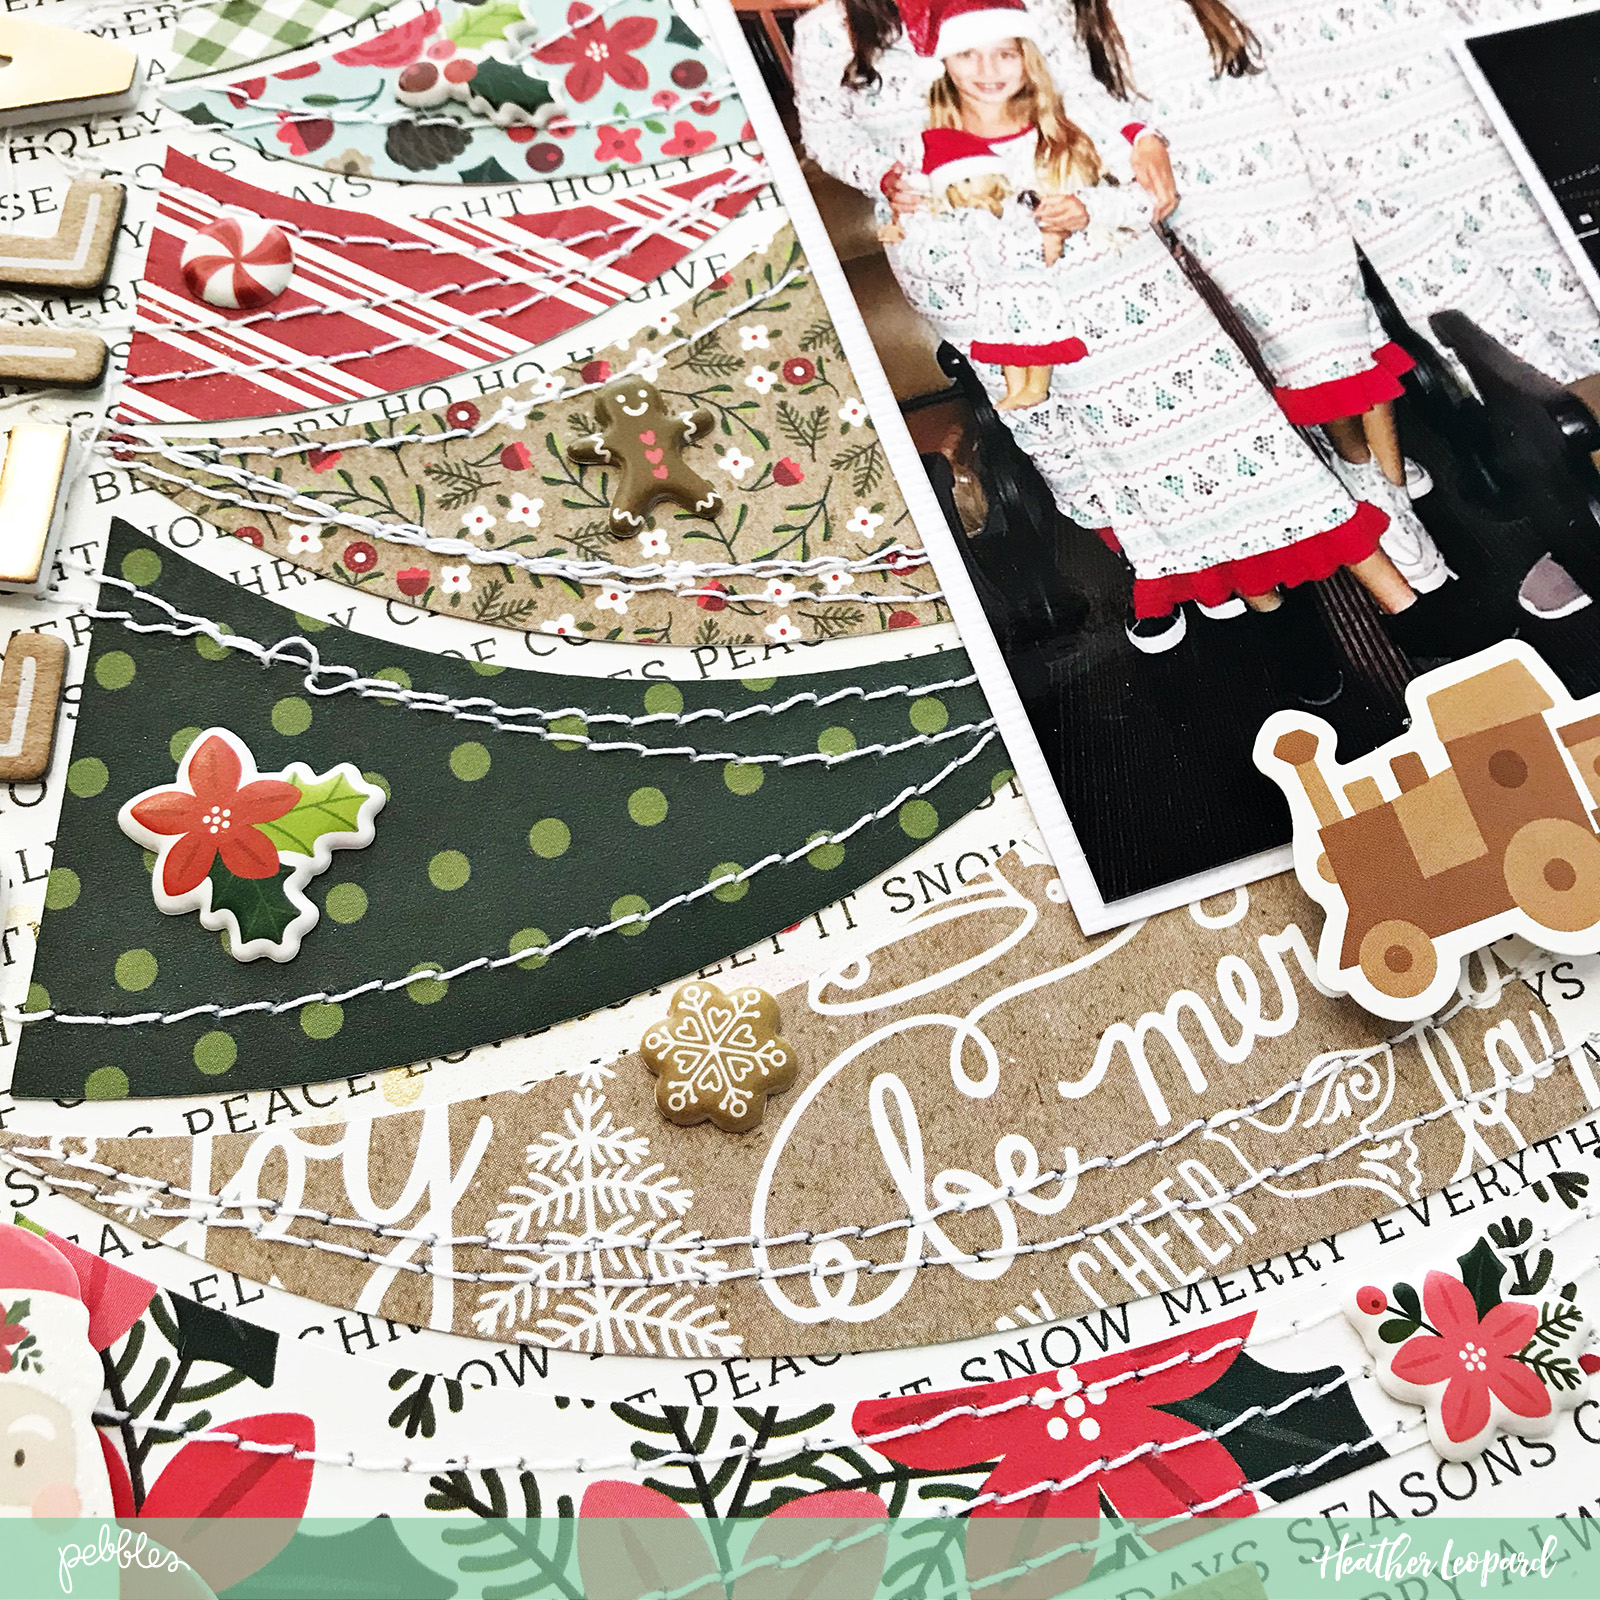 Christmas Traditions Scrapbooking Layout by @HeatherLeopard using @PebblesInc #merrymerry collection #madewithpebbles #scrapbooking #scrapbook #Christmas #ChristmasTraditions #ChristmasTree #Cutfile